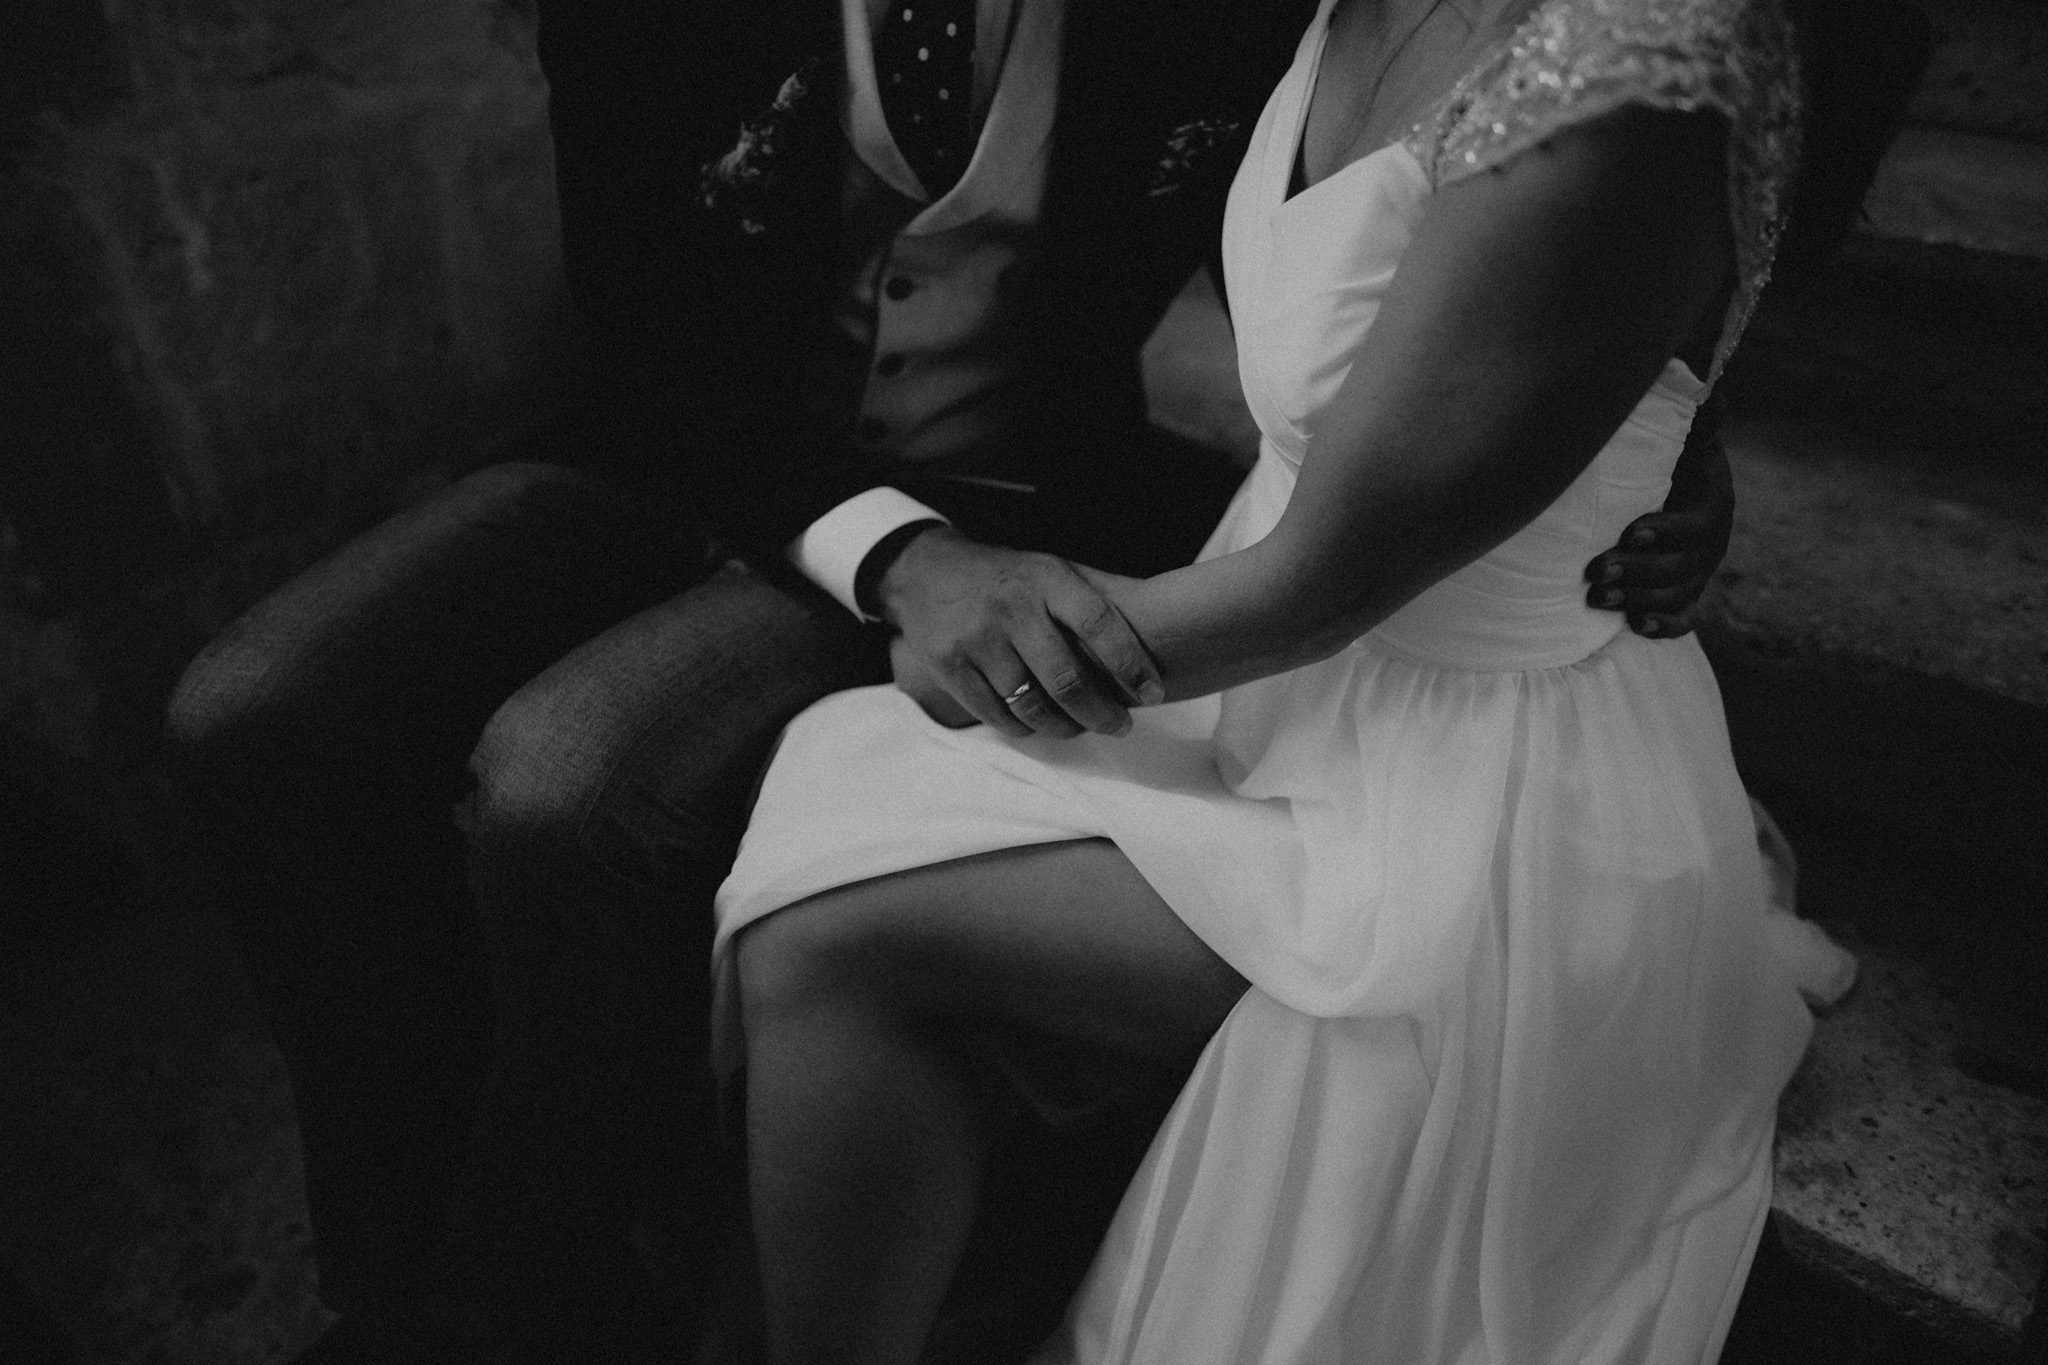 Chateau-de-Marsac-wedding-photography-109.jpg